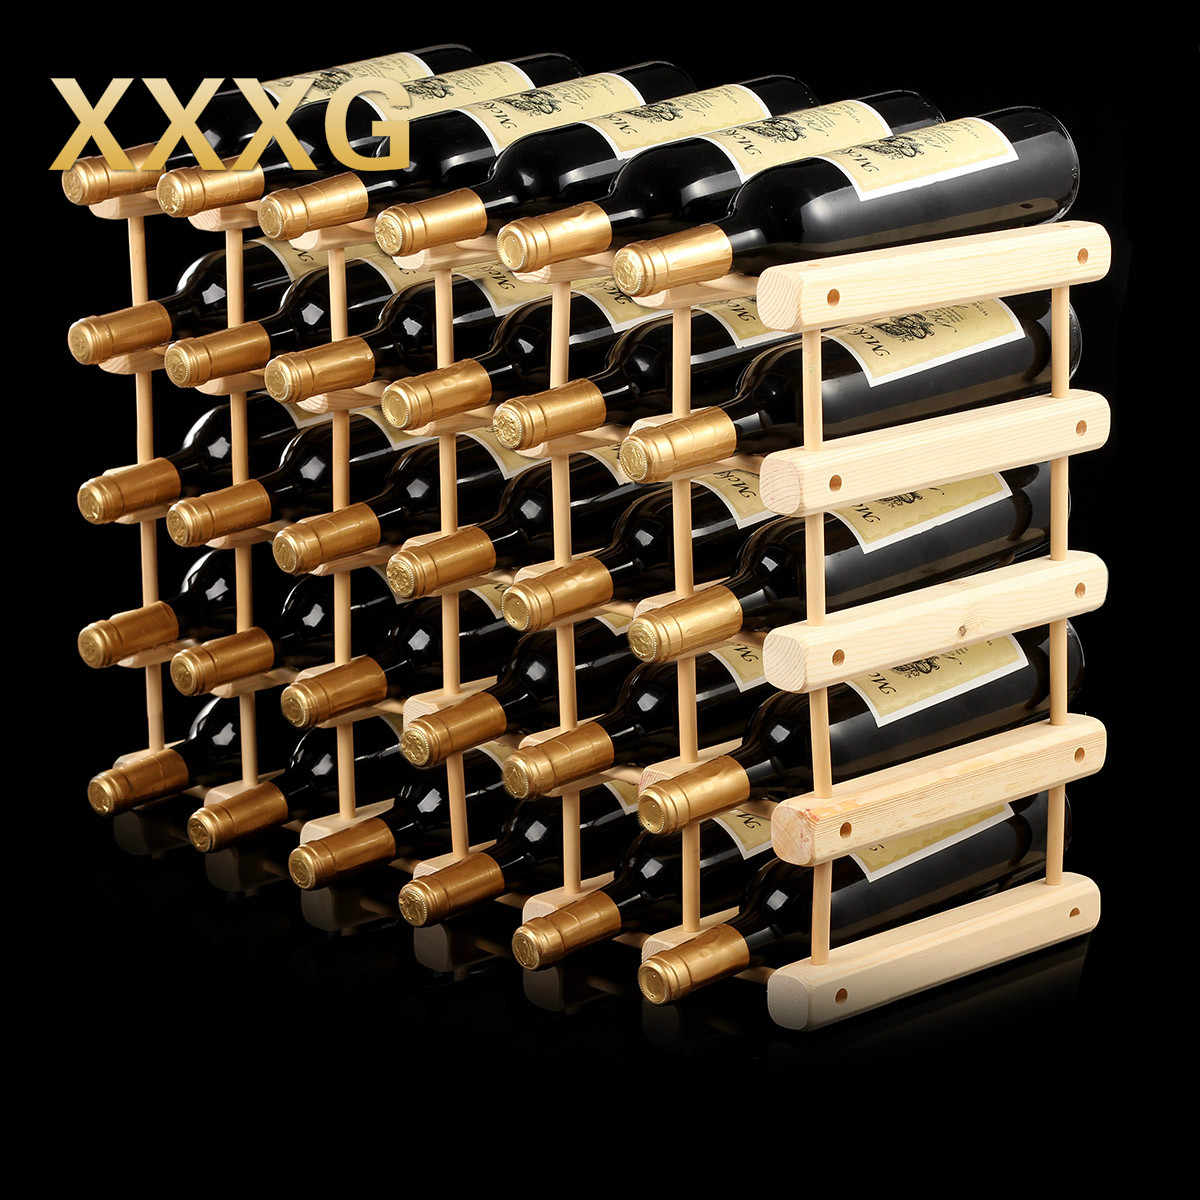 Wooden Bottle Rack Xxxg Diy Creative Foldable Wine Rack Wooden Wine Beer Bottle Rack Organizer Holder Mount Kitchen Bar Display Wine Racks